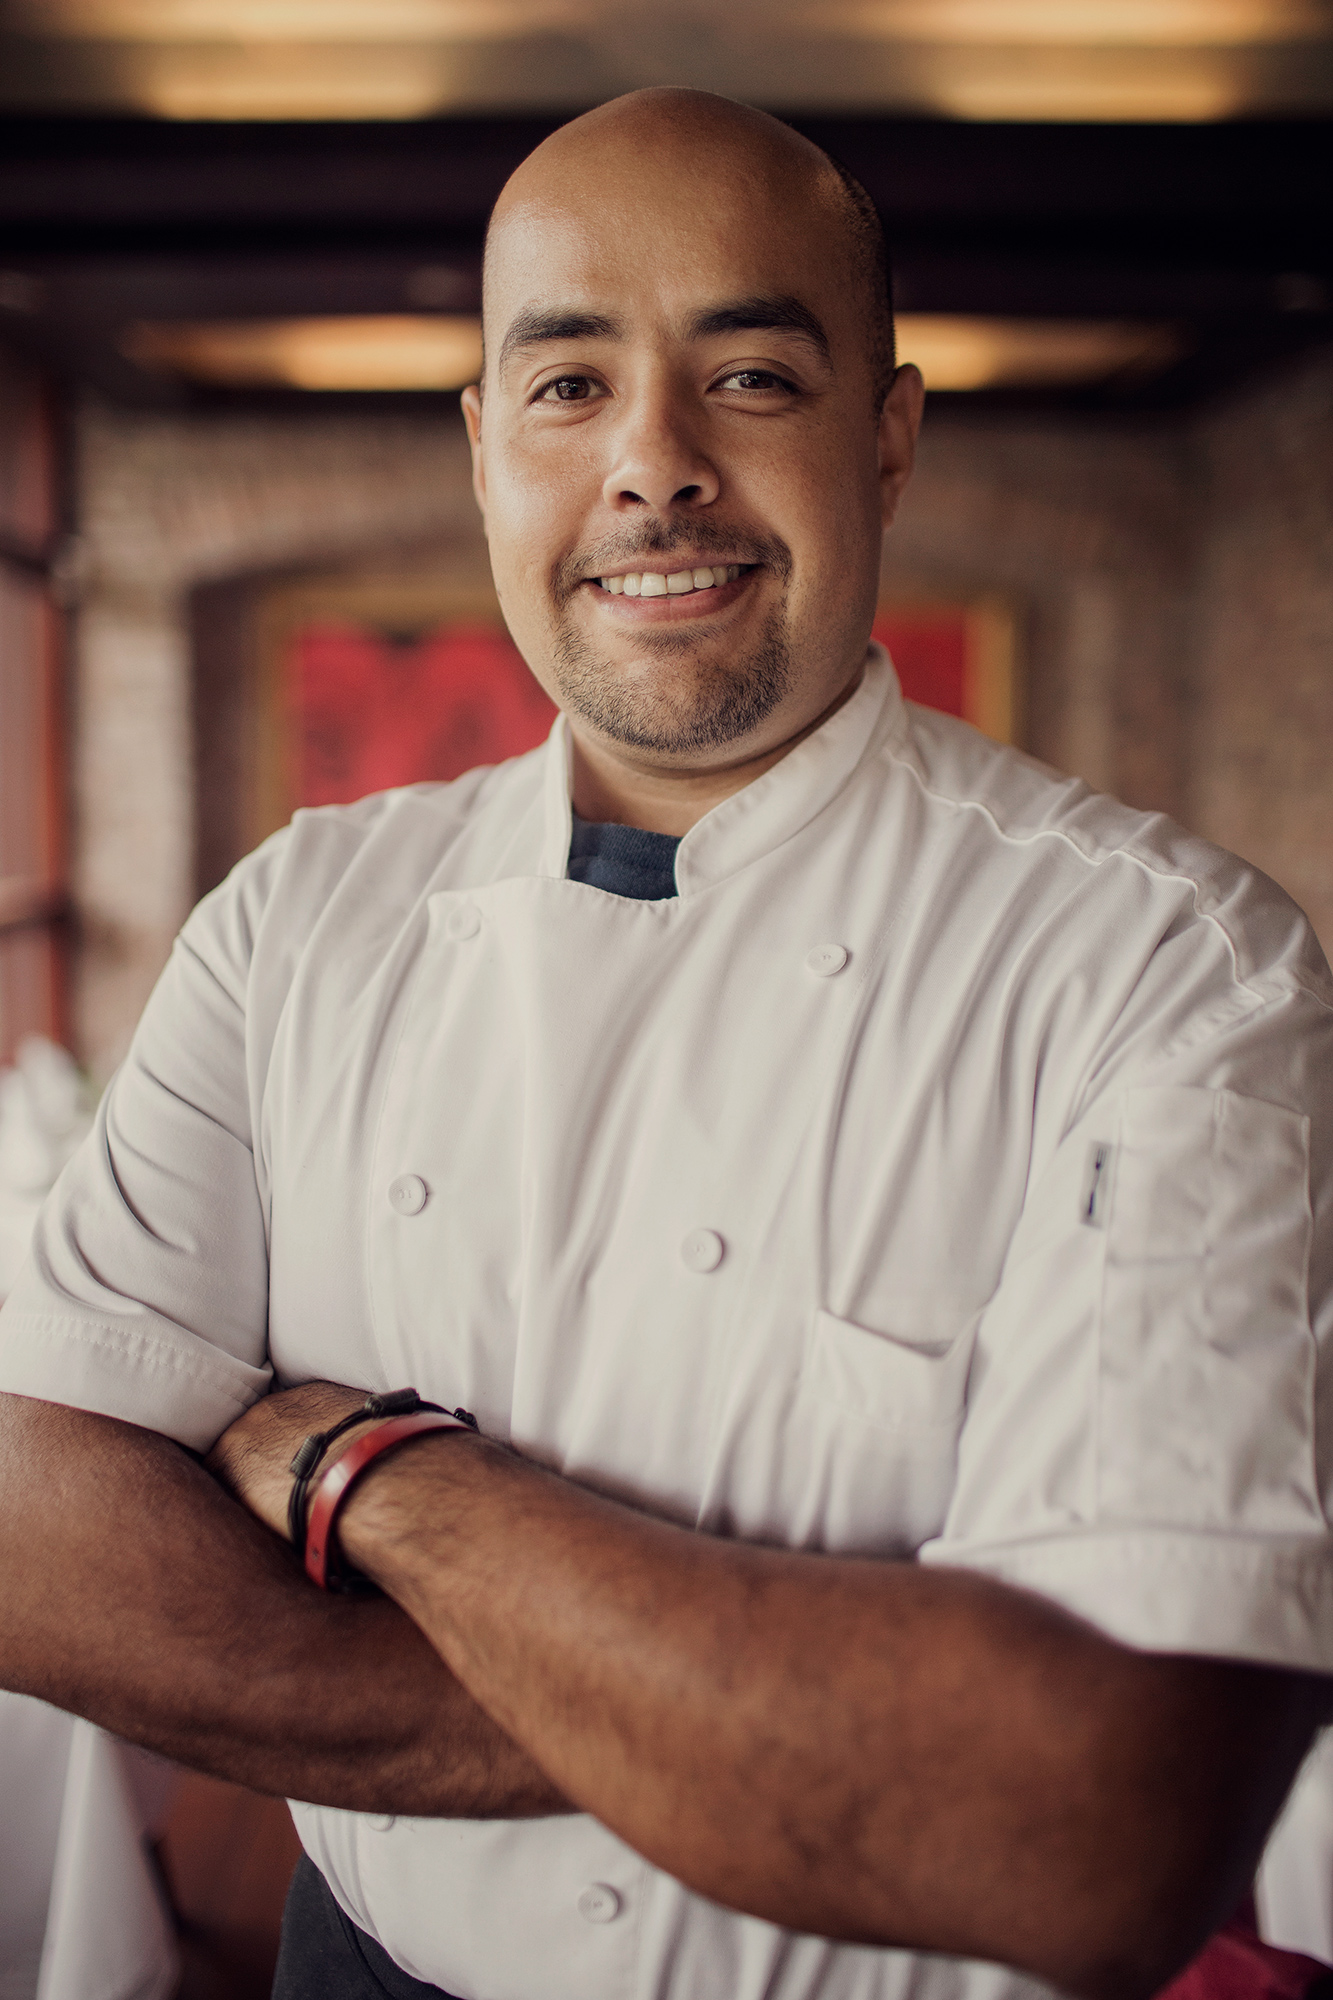 Chef Daniel Miranda is photographed at his restaurant in The Woodlands, Texas by photographer Todd Spoth.